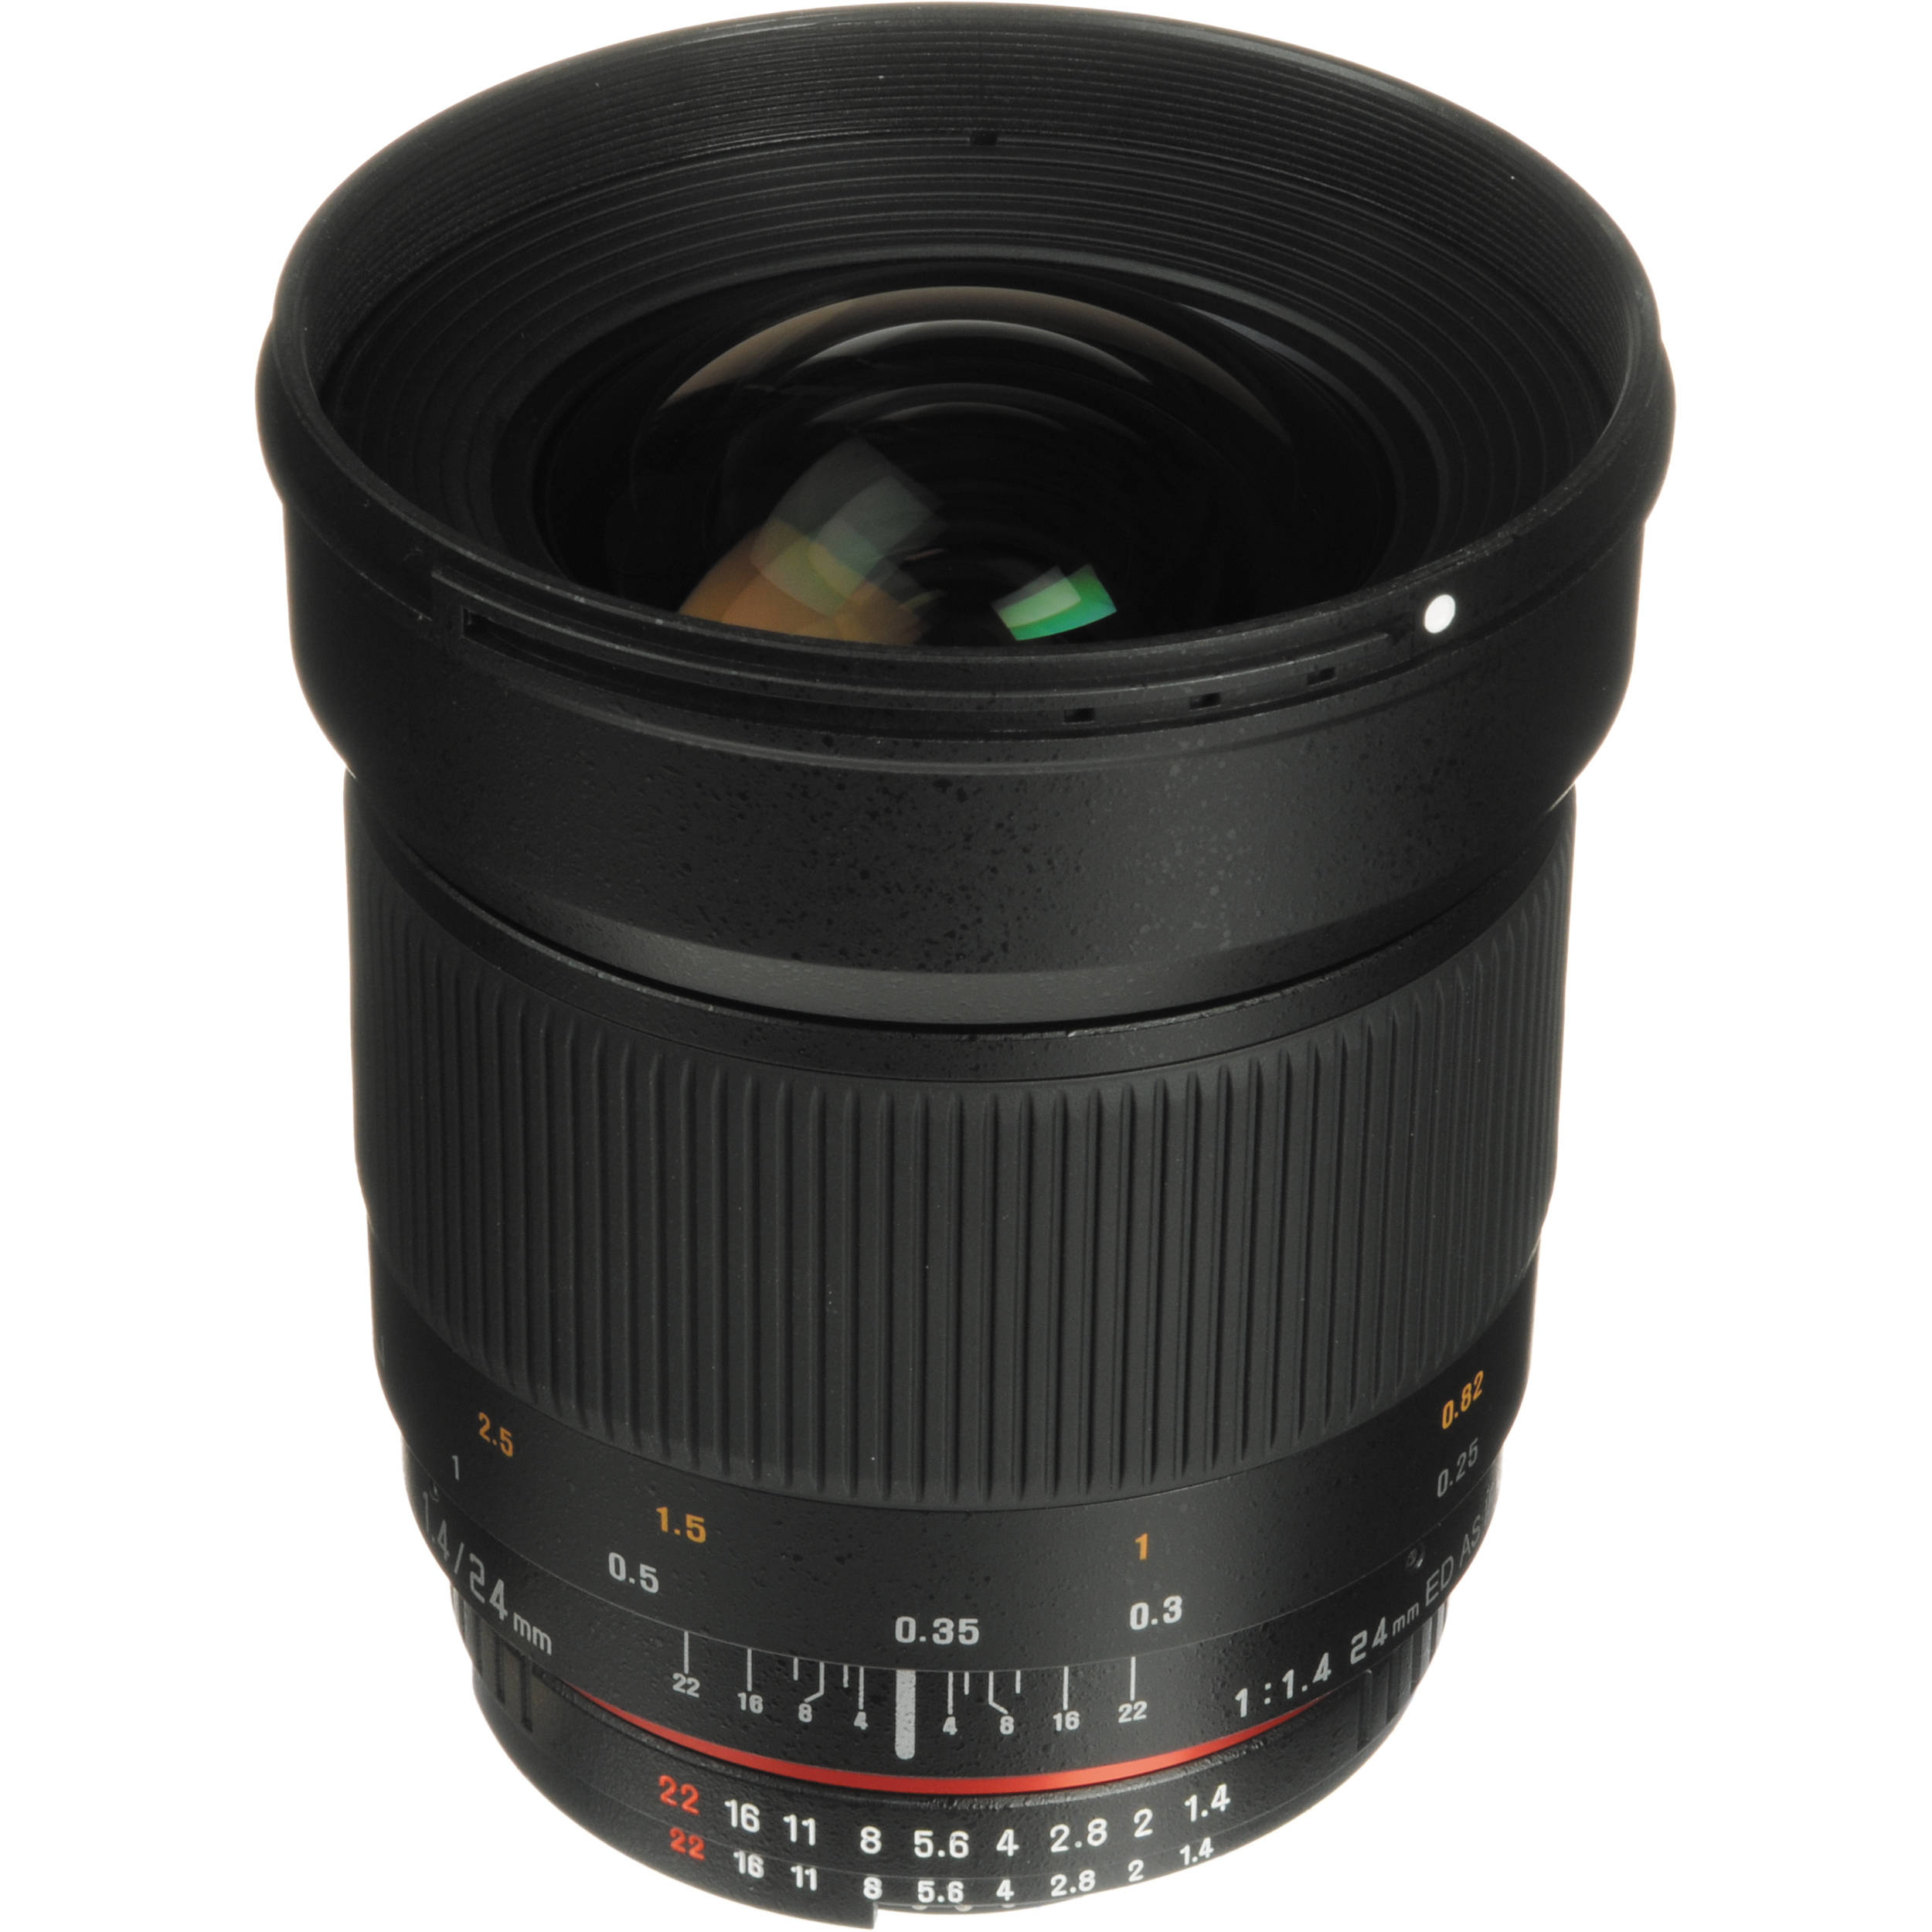 Samyang 24mm f/1.4 ED AS UMC Wide-Angle Lens (Nikon)